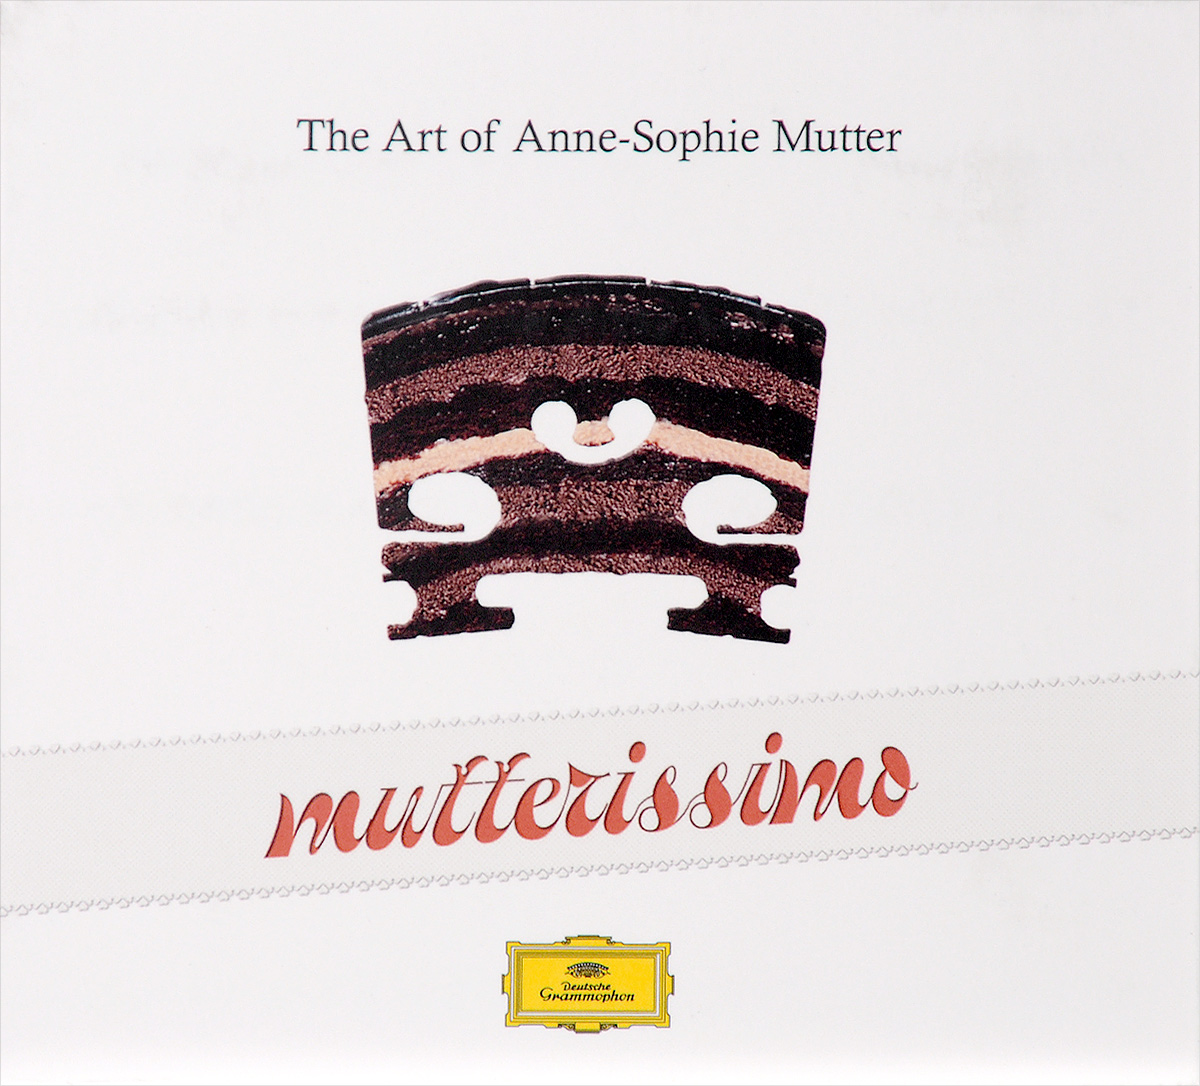 Анна-Софи Муттер Mutterissimo. The Art Of Anne-Sophie Mutter (2 CD) анна софи муттер anne sophie mutter mendelssohn cd dvd